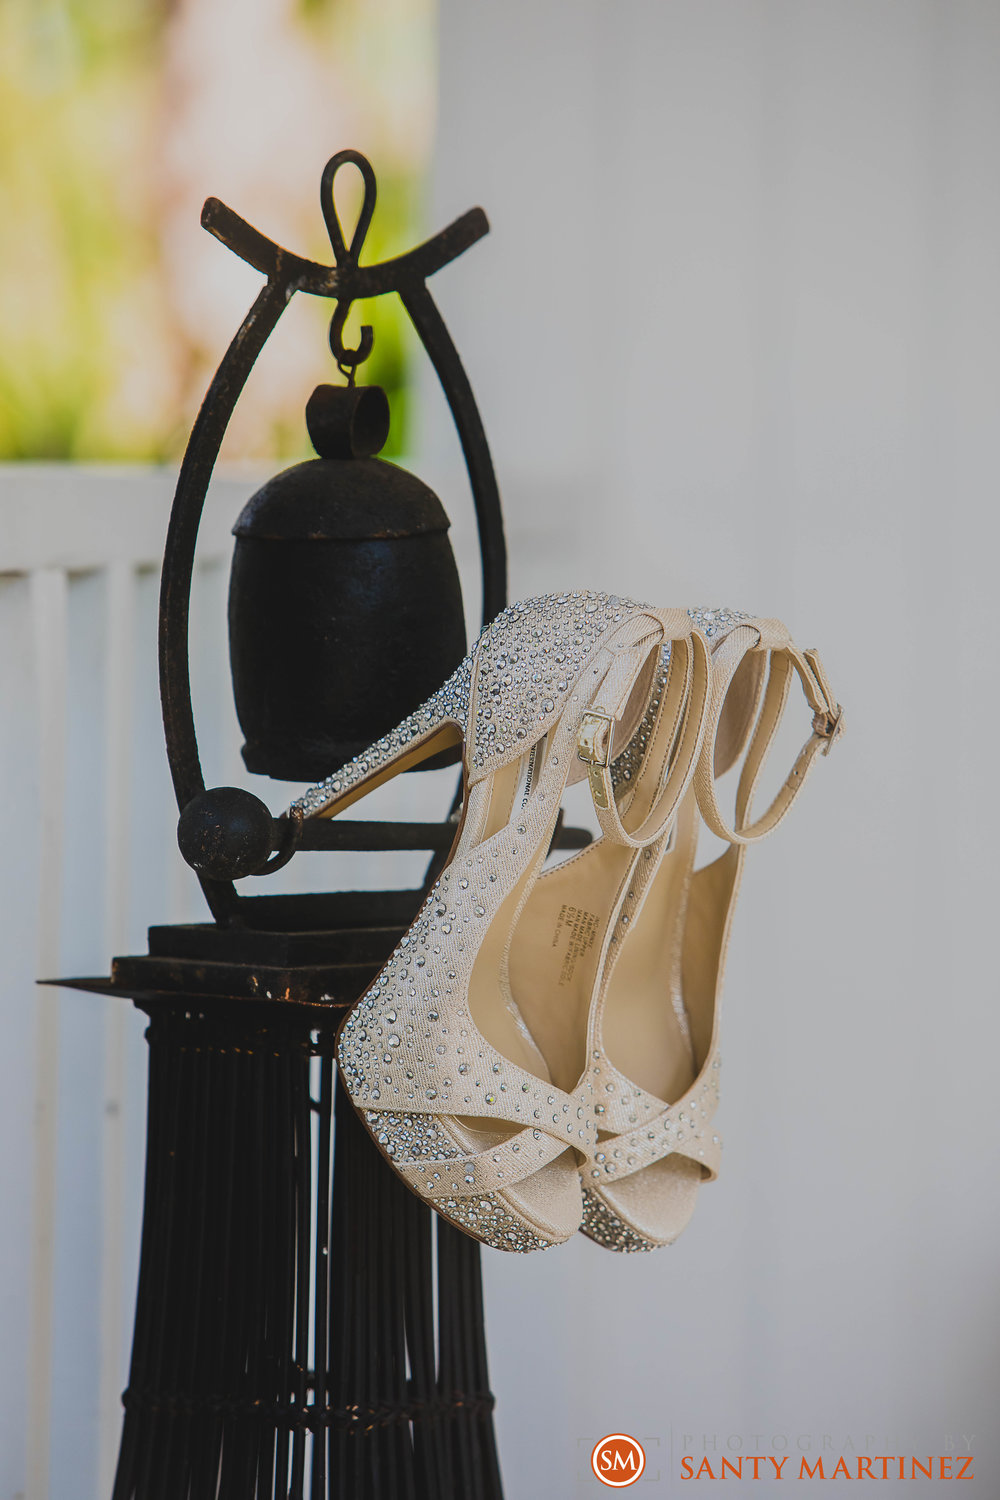 Wedding - Whimsical key West House - Photography by Santy Martinez-4.jpg